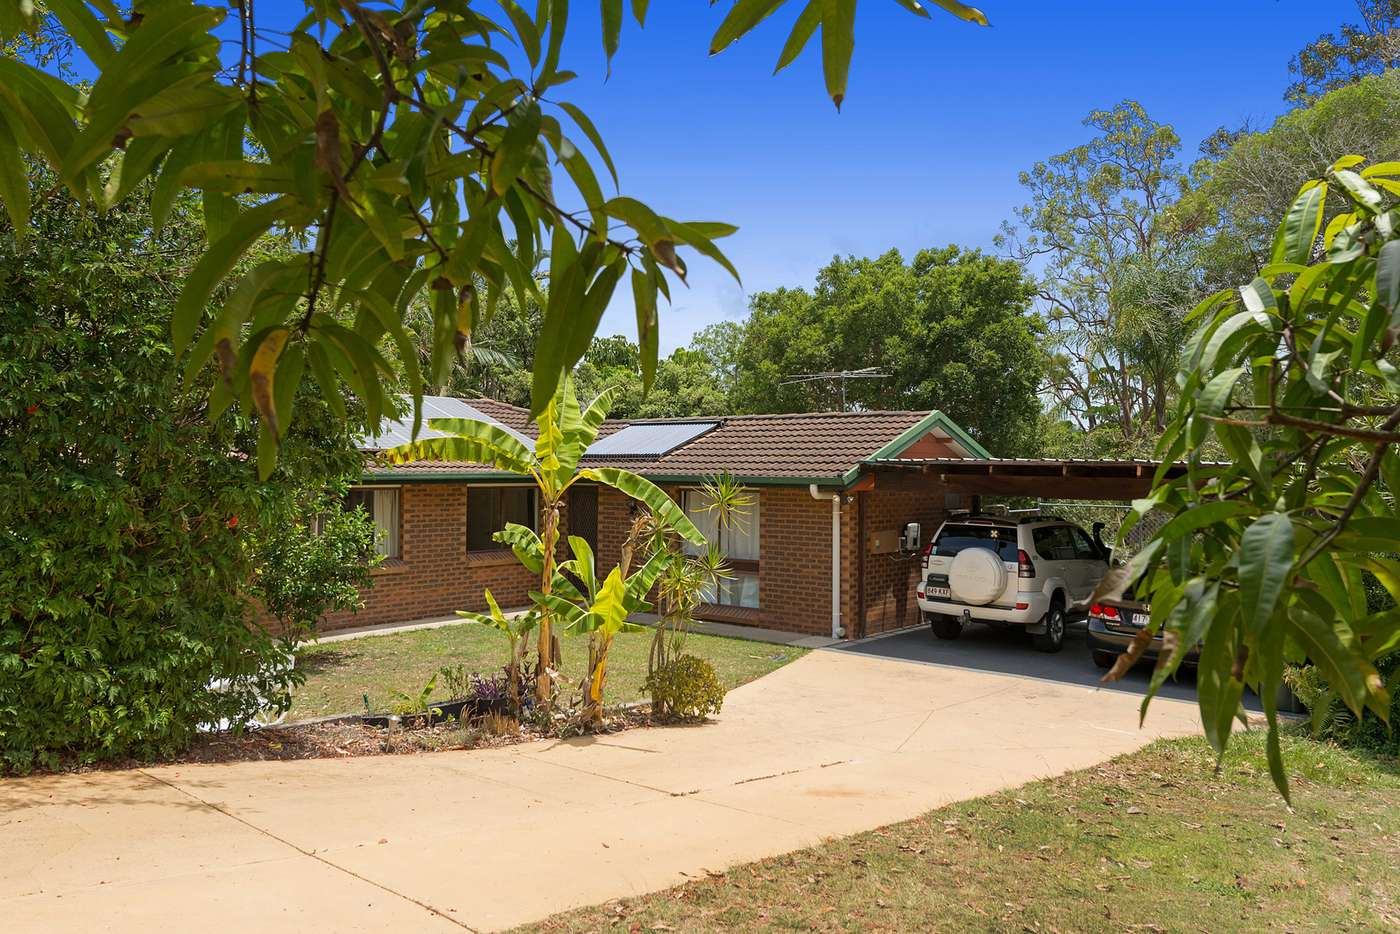 Main view of Homely house listing, 14 Marlock Street, Bellbowrie QLD 4070